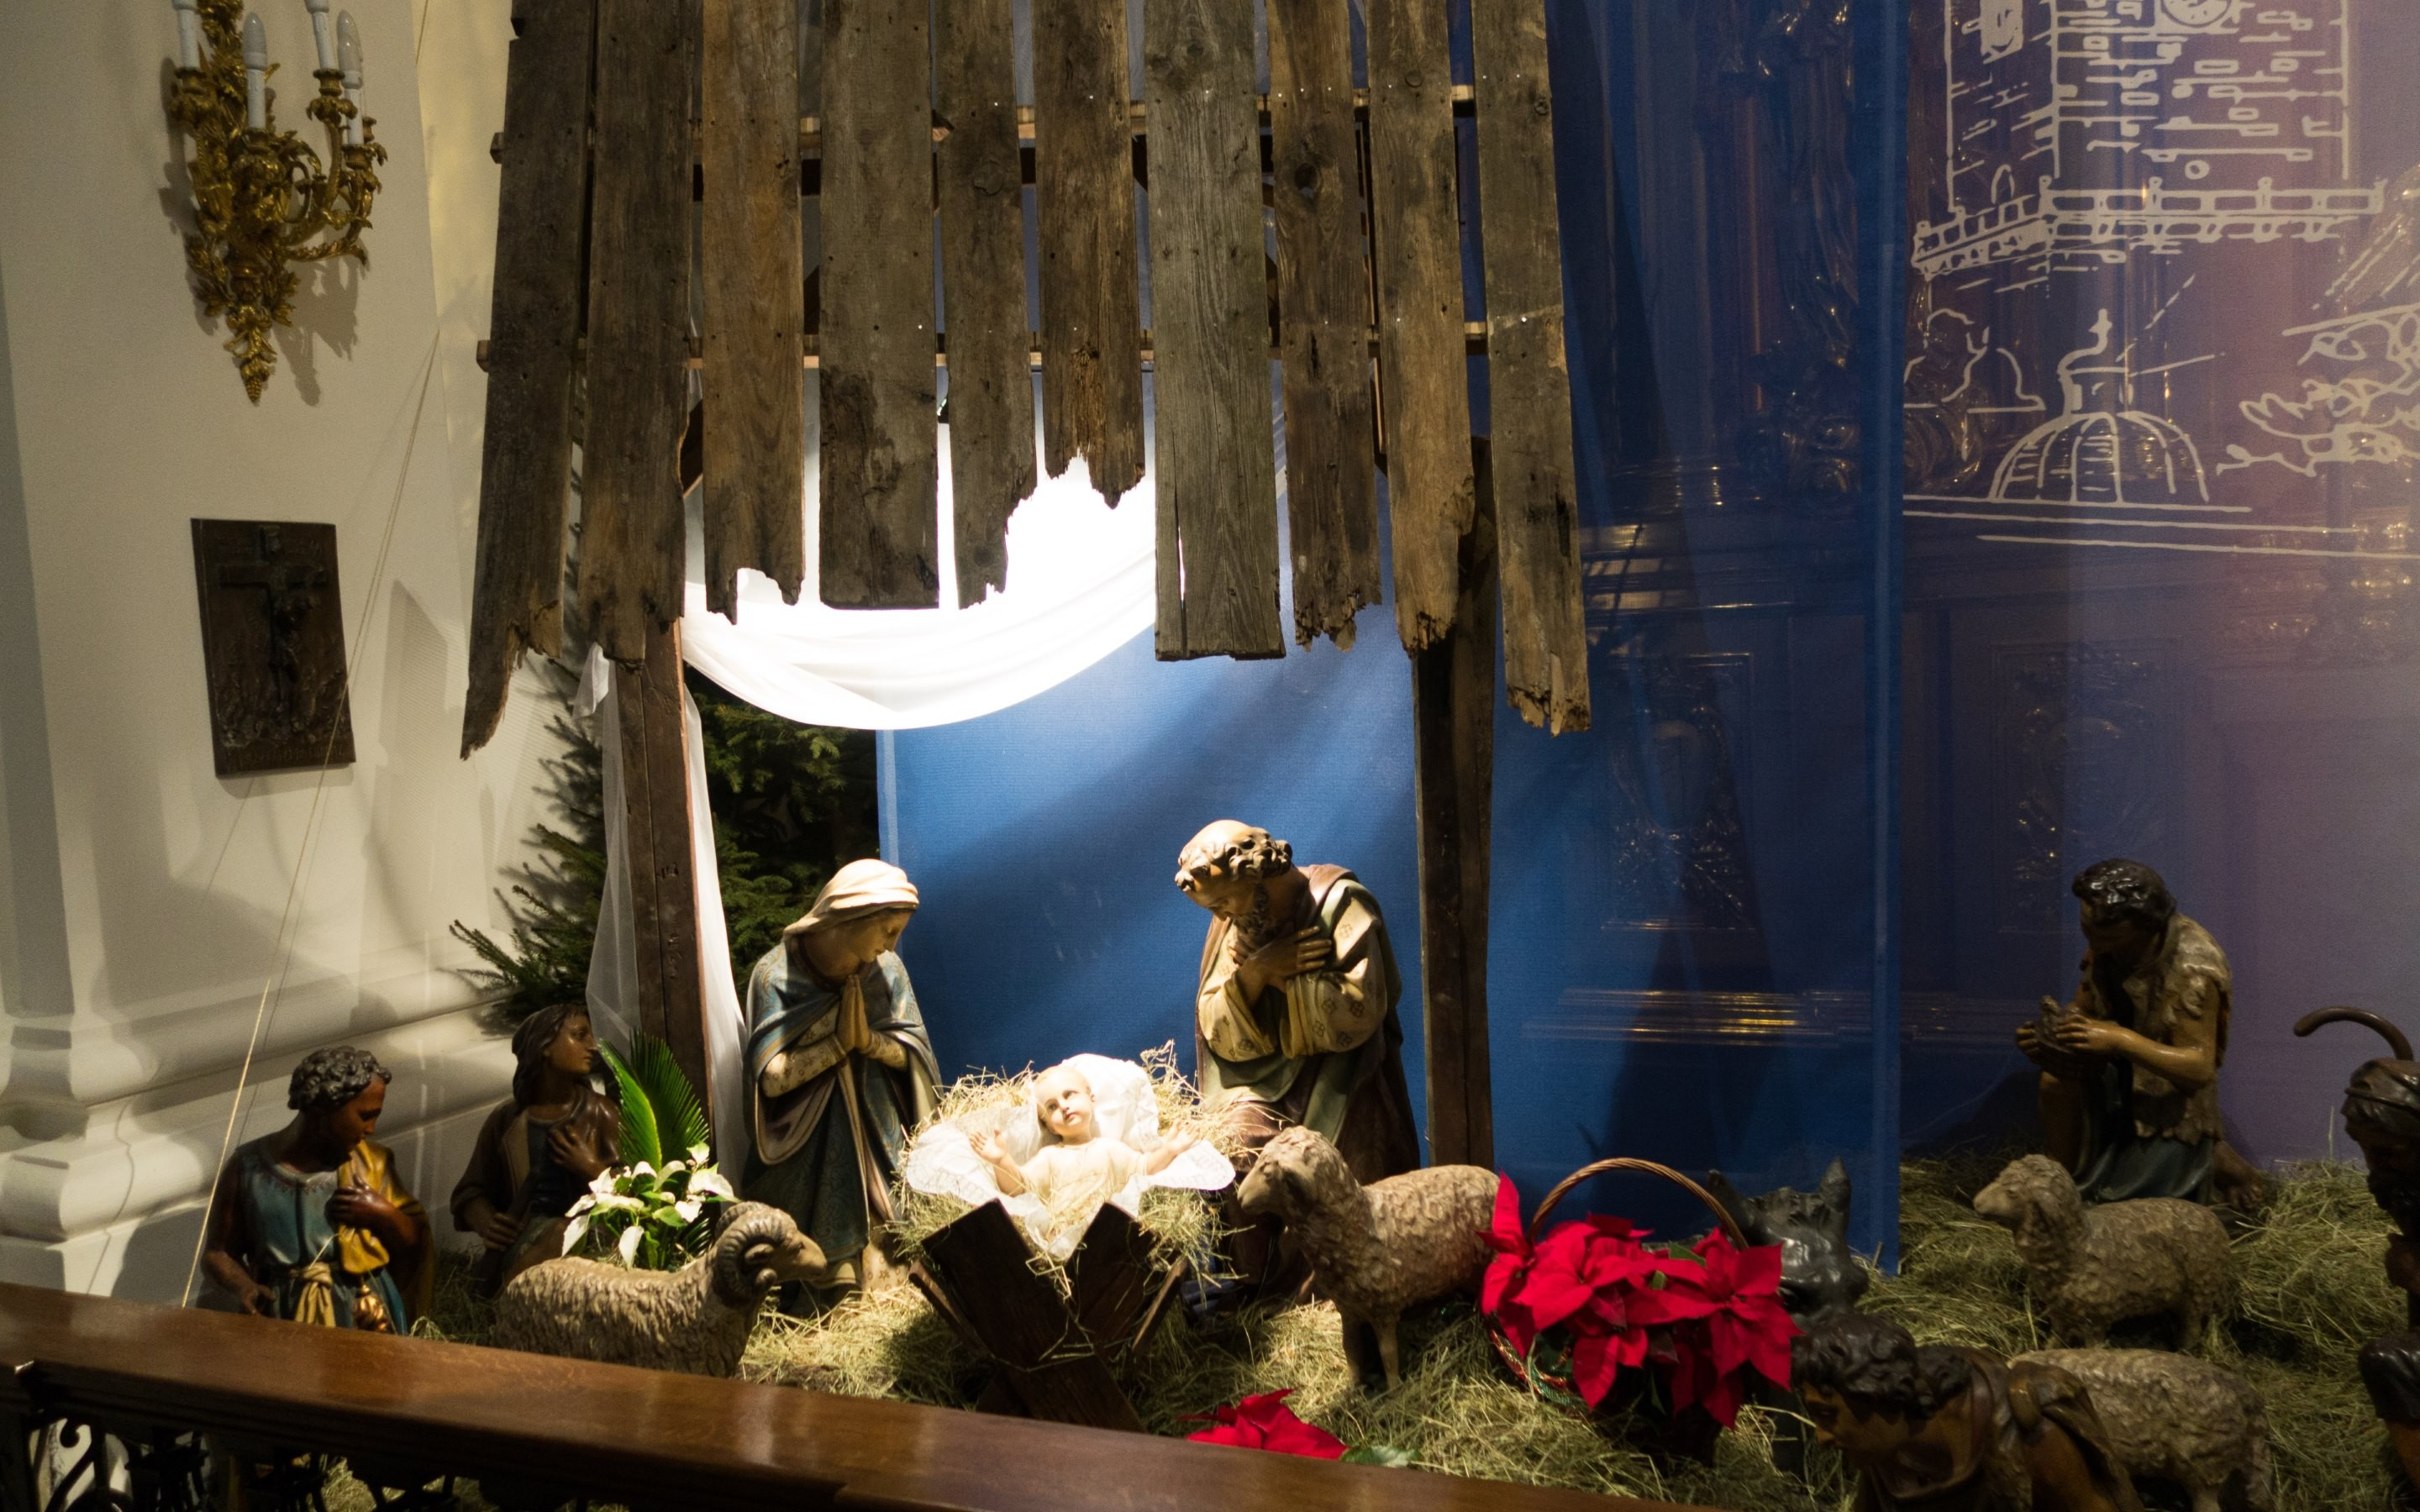 christmas nativity scene wallpaper  u00b7 u2460 download free hd